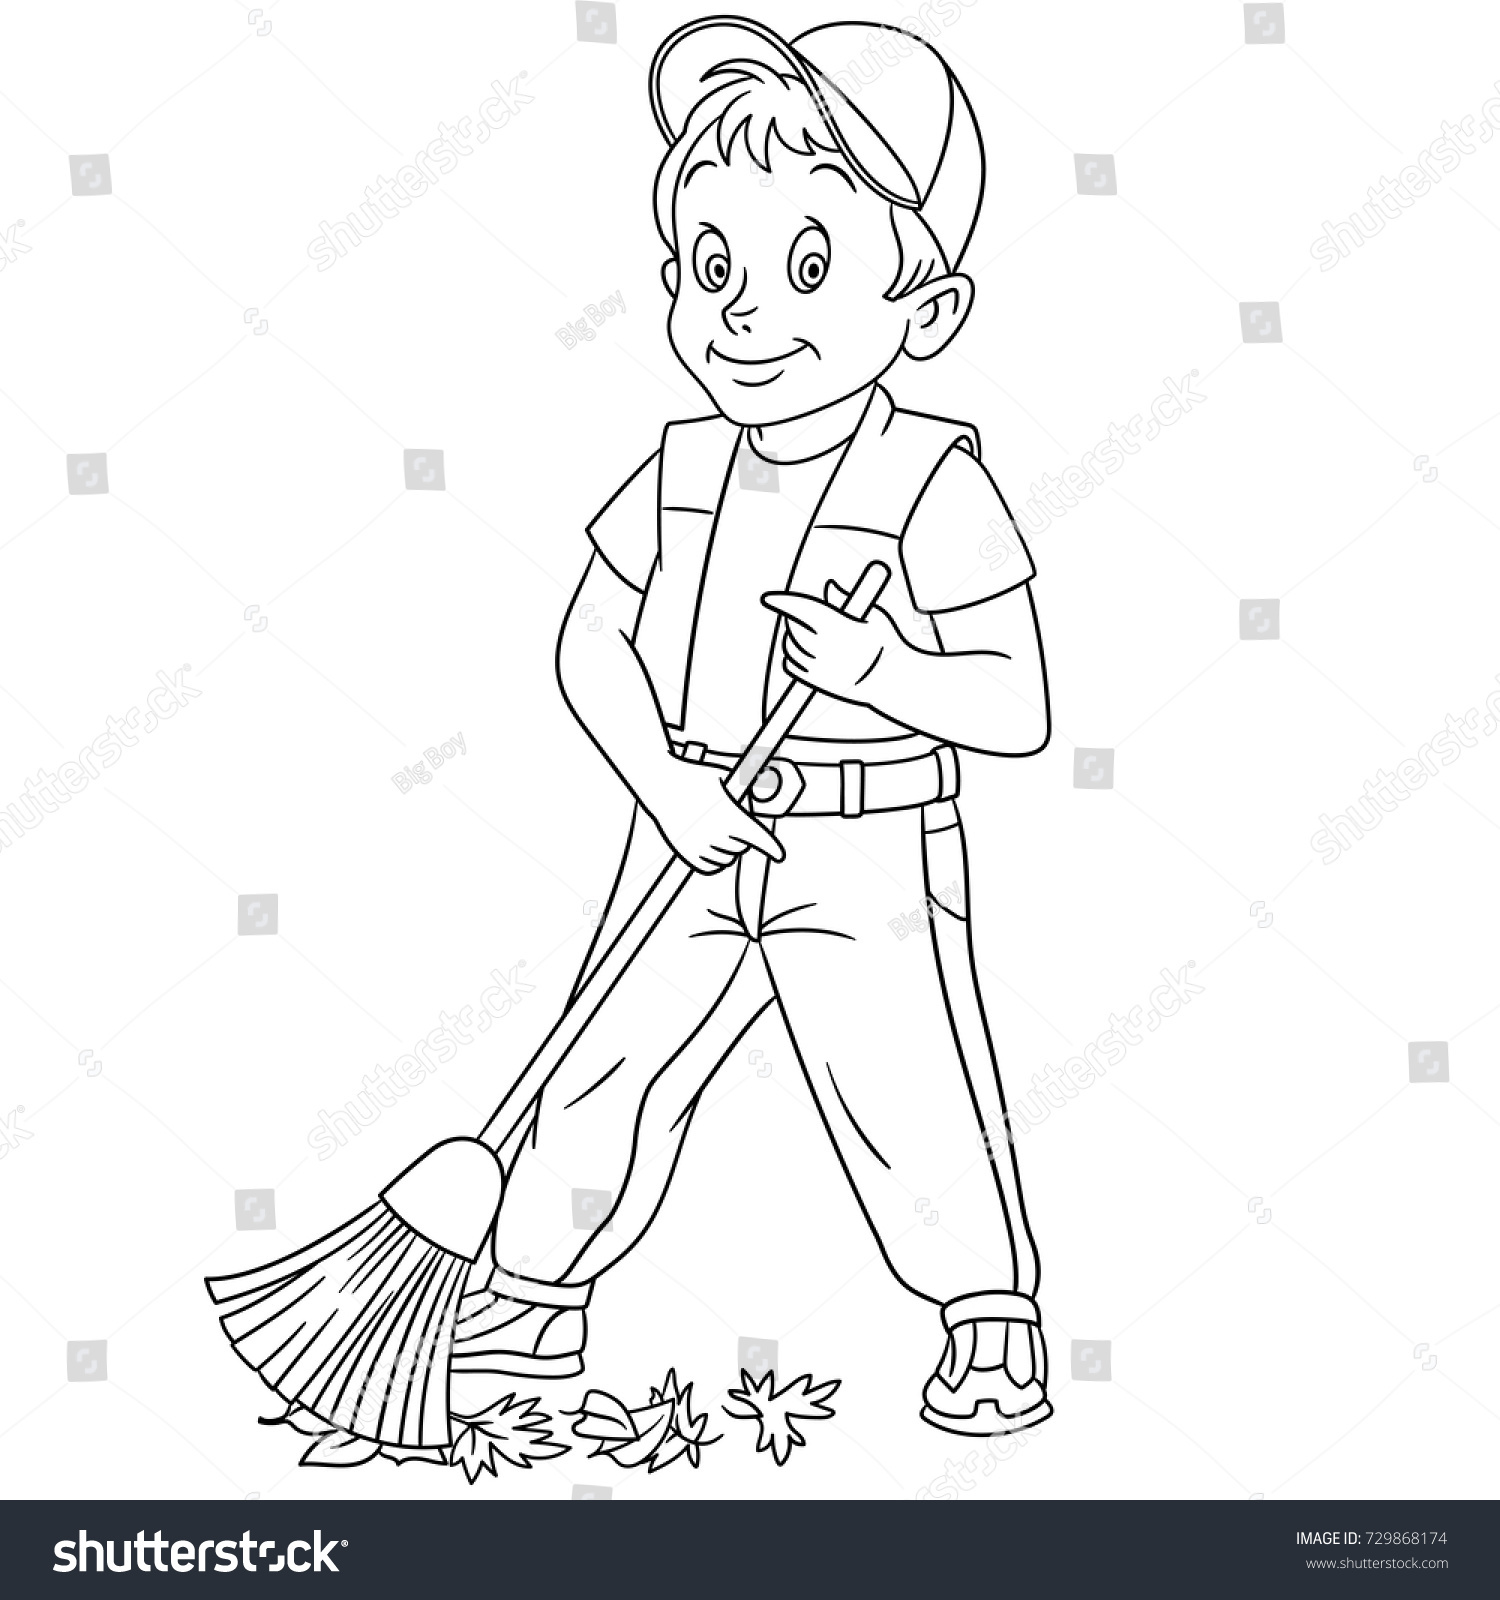 Street sweeper clipart black and white 7 » Clipart Station.